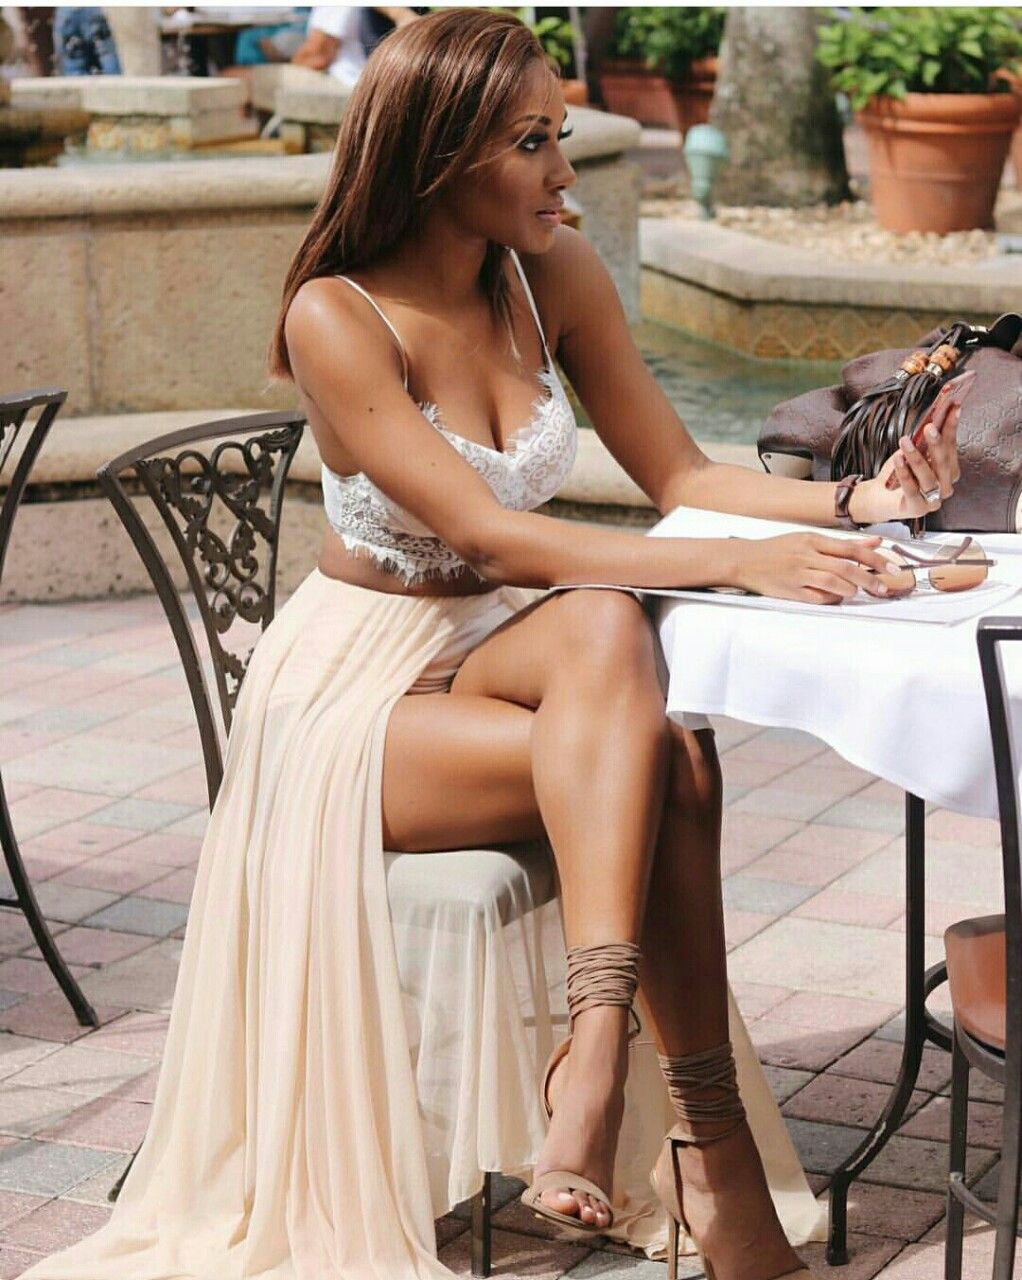 Fashion Glamour Style Luxury 05 Crossed Legs 02 Pinterest Glamour Luxury And Legs